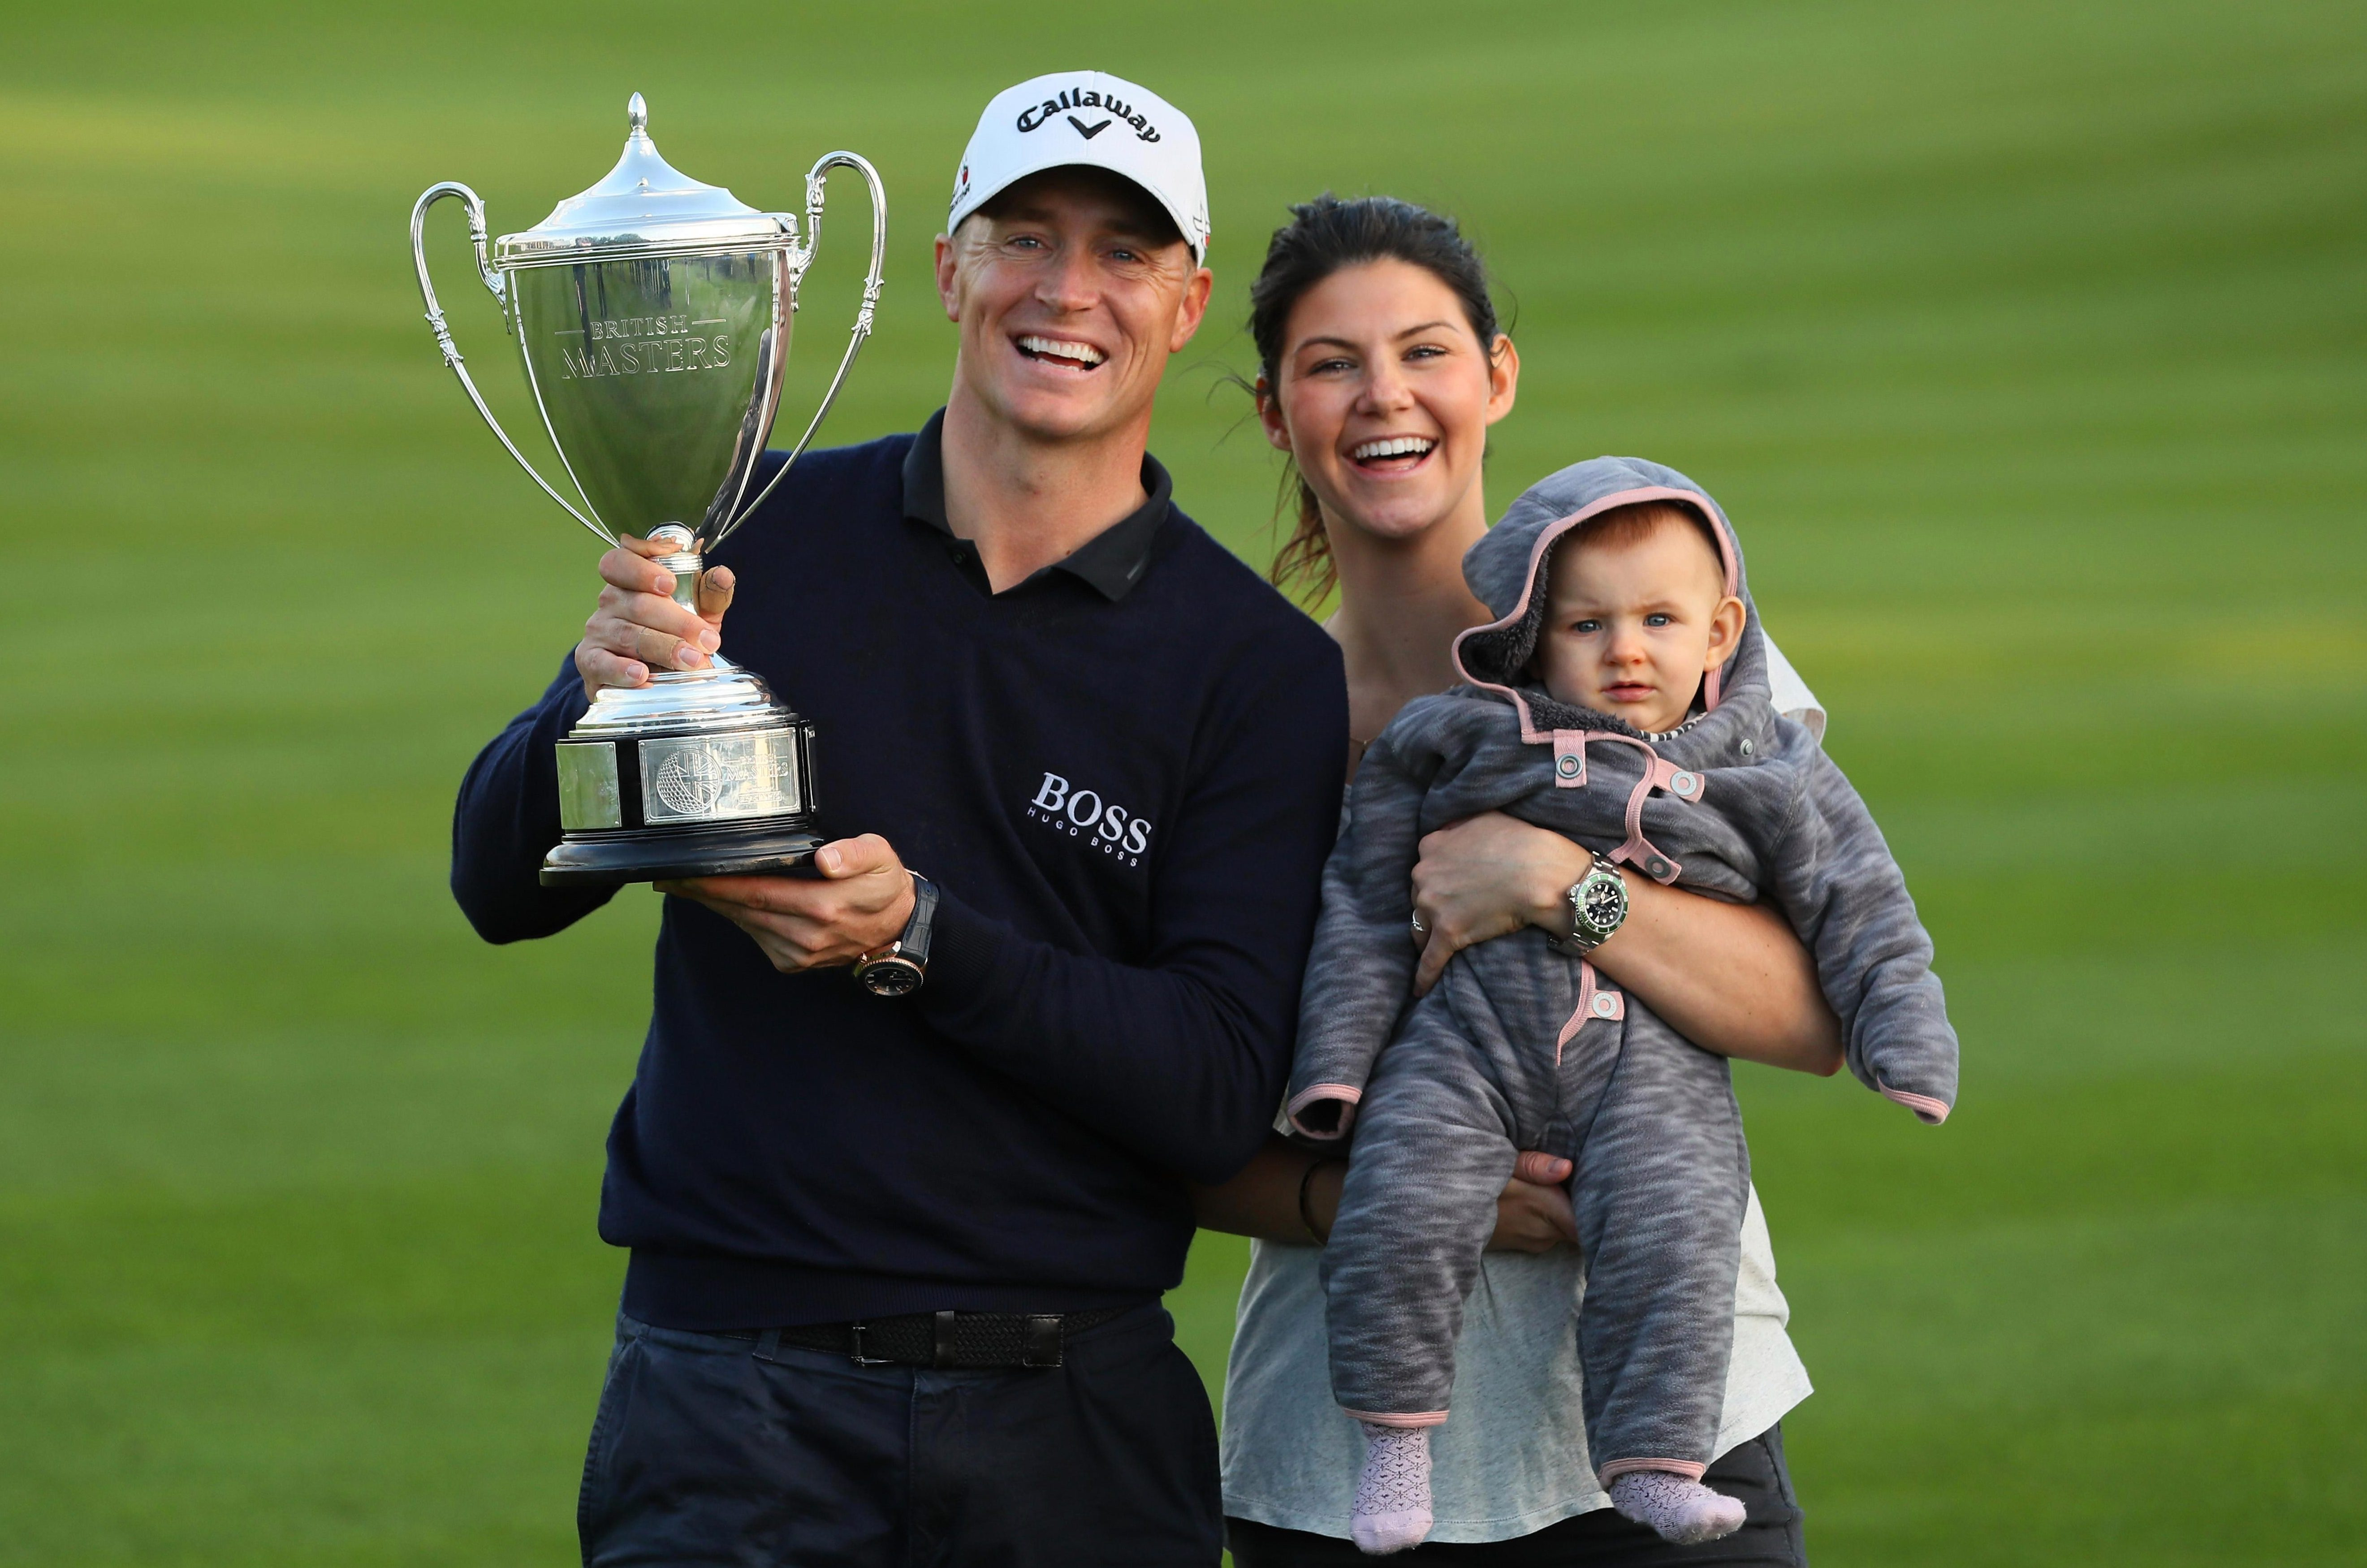 Alex Noren and Jennifer Kovacs celebrate with the trophy at the British Masters in 2016